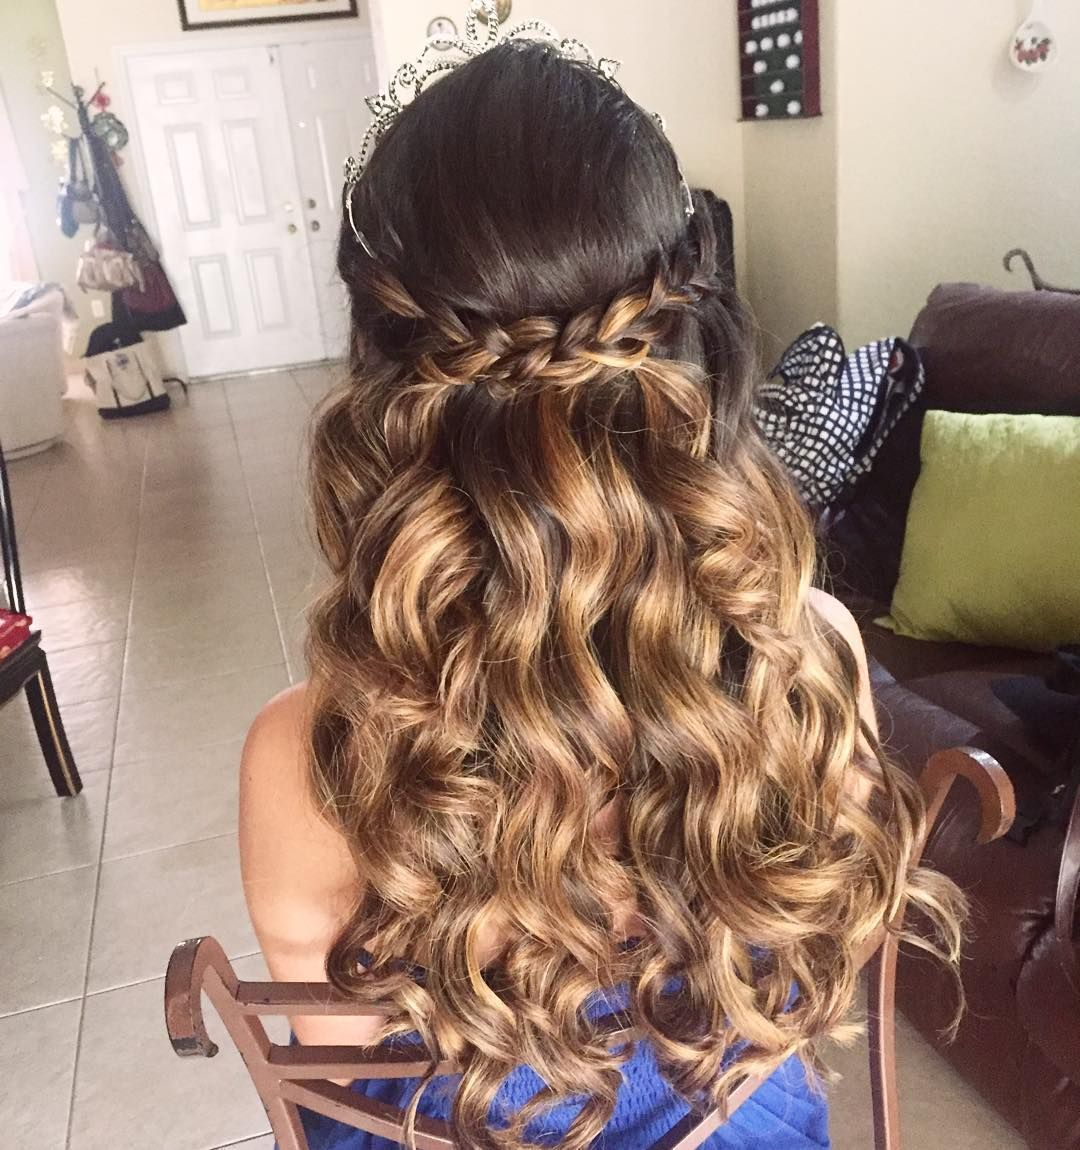 Quinceanera Hairstyles Cool 20 Absolutely Stunning Quinceanera Hairstyles With Crown